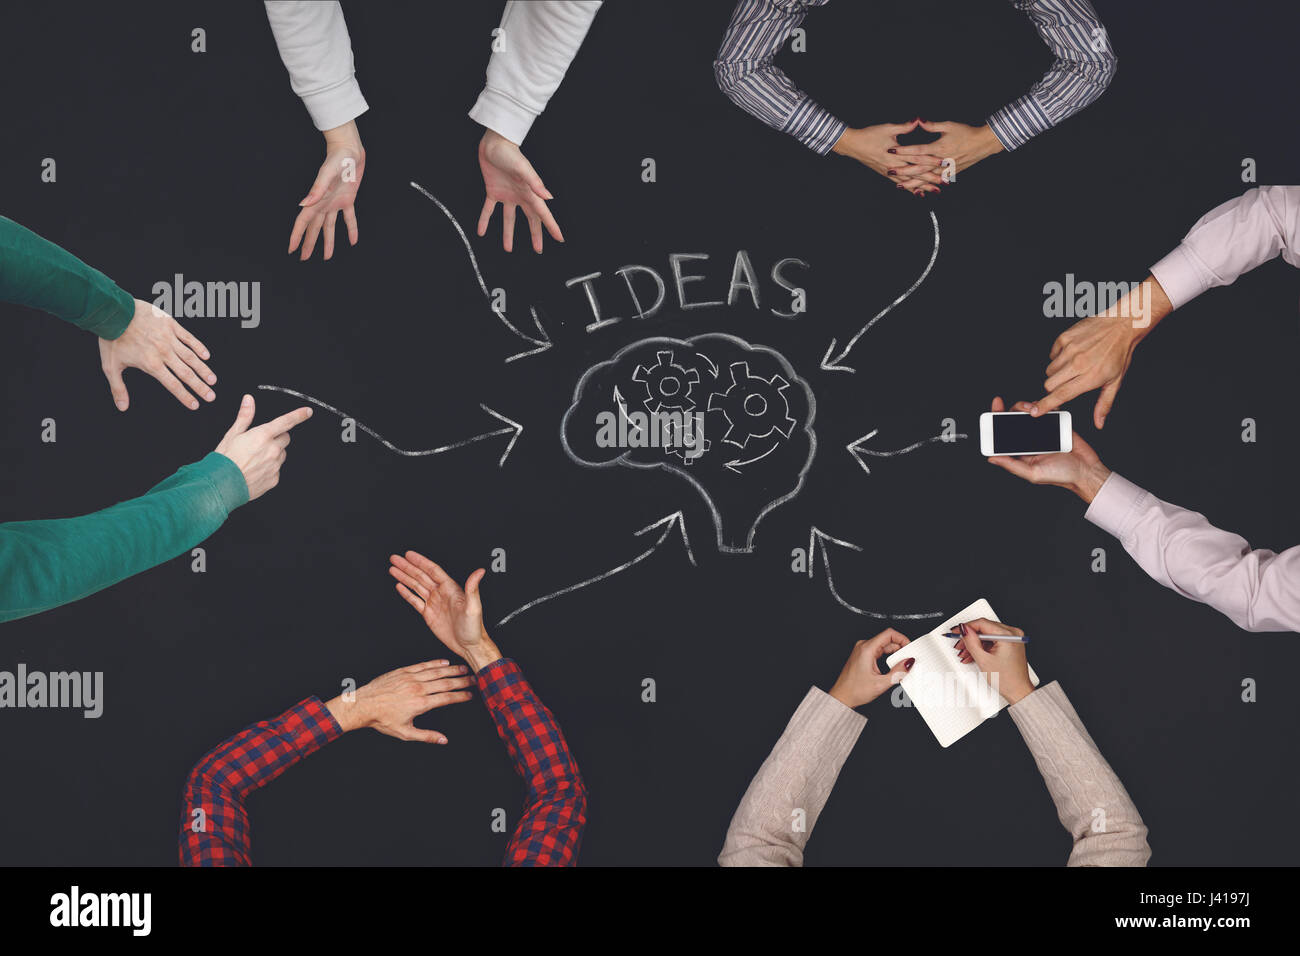 Teamwork concept - top view of six people generate ideas. - Stock Image